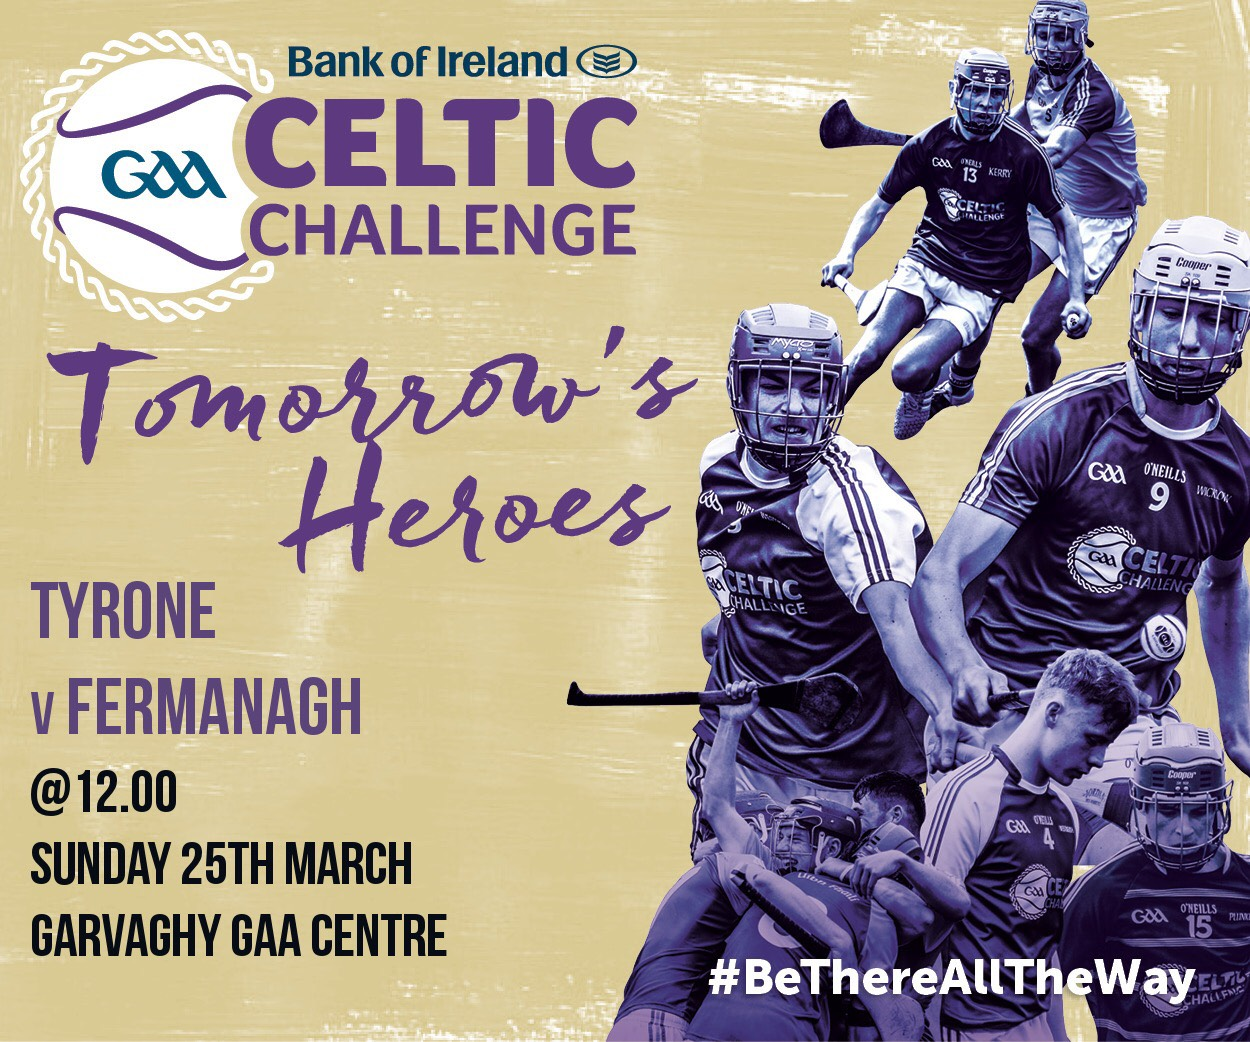 Celtic Challenge Tyrone v Fermanagh Sunday at 12pm